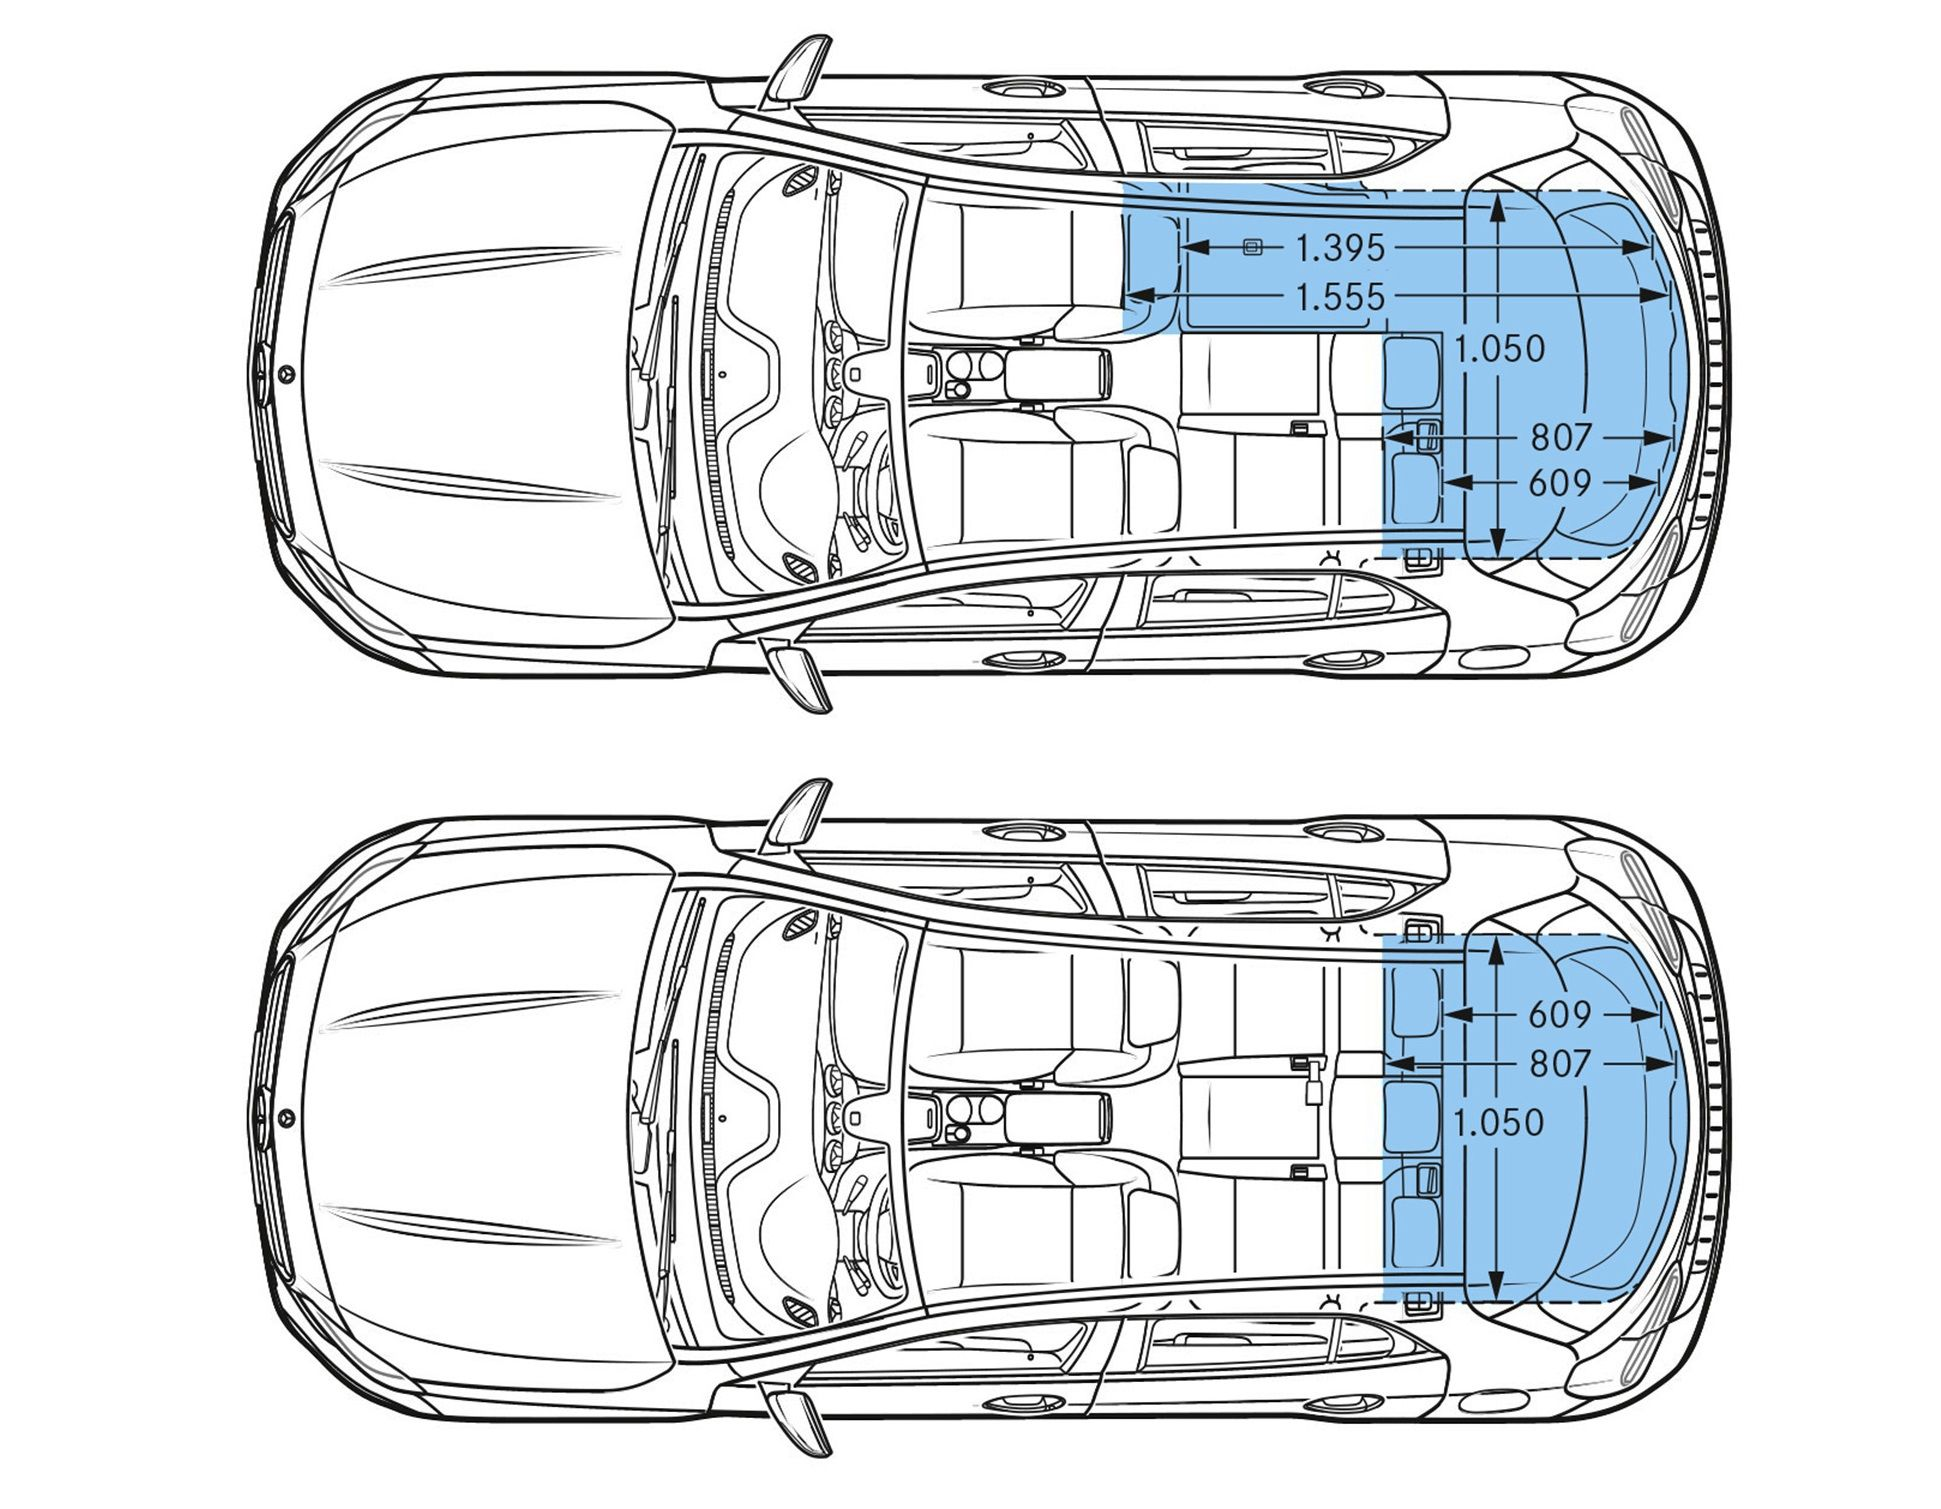 How Much Can You Load In The Compartment Of The Mercedes Gla